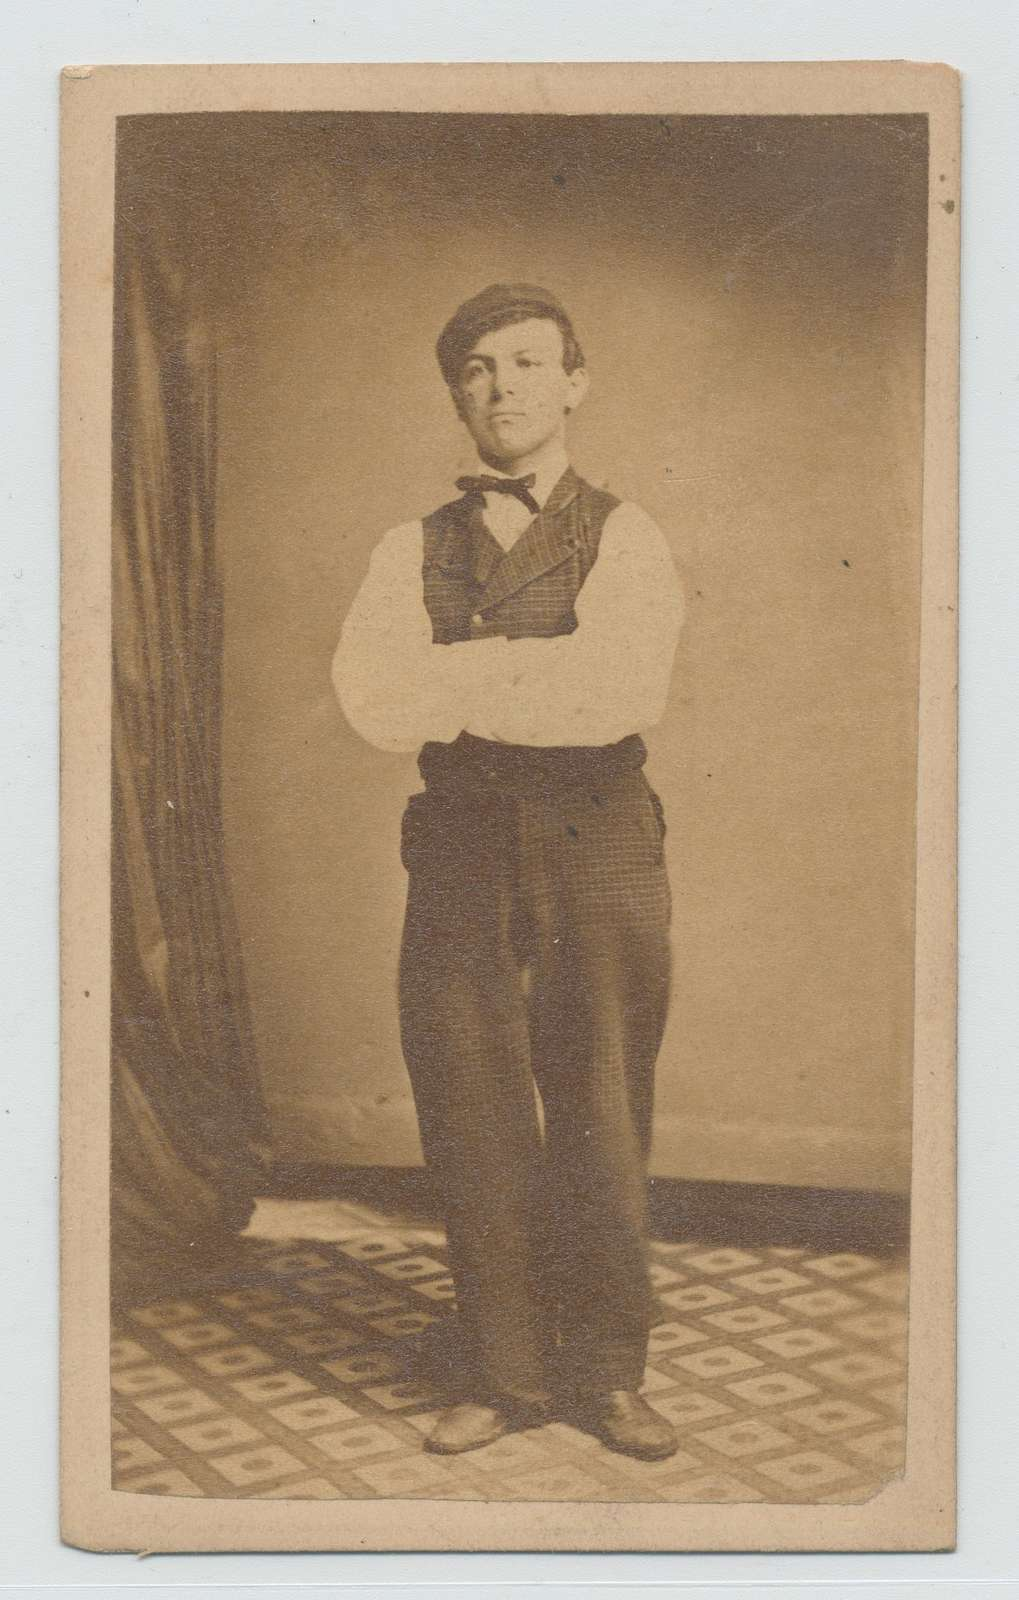 Man with injured right leg stands clothed in shirt, vest and pants, with arms crossed